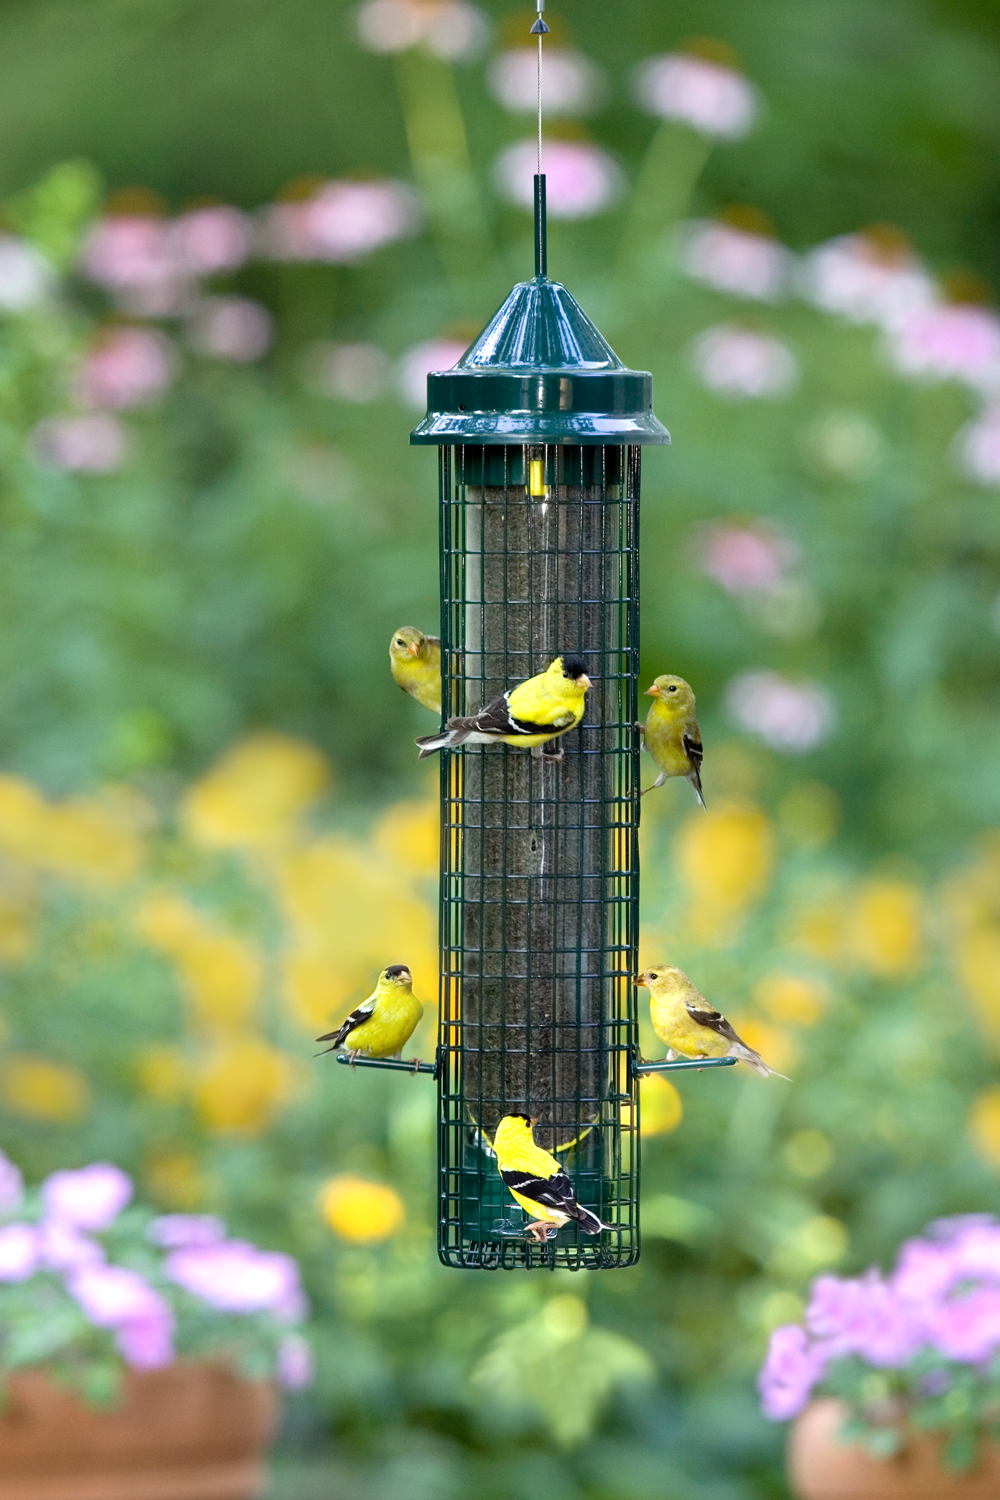 bird montagne feeder la cat de les finch charron amis activity salut cousin en copie jc circuit feeders